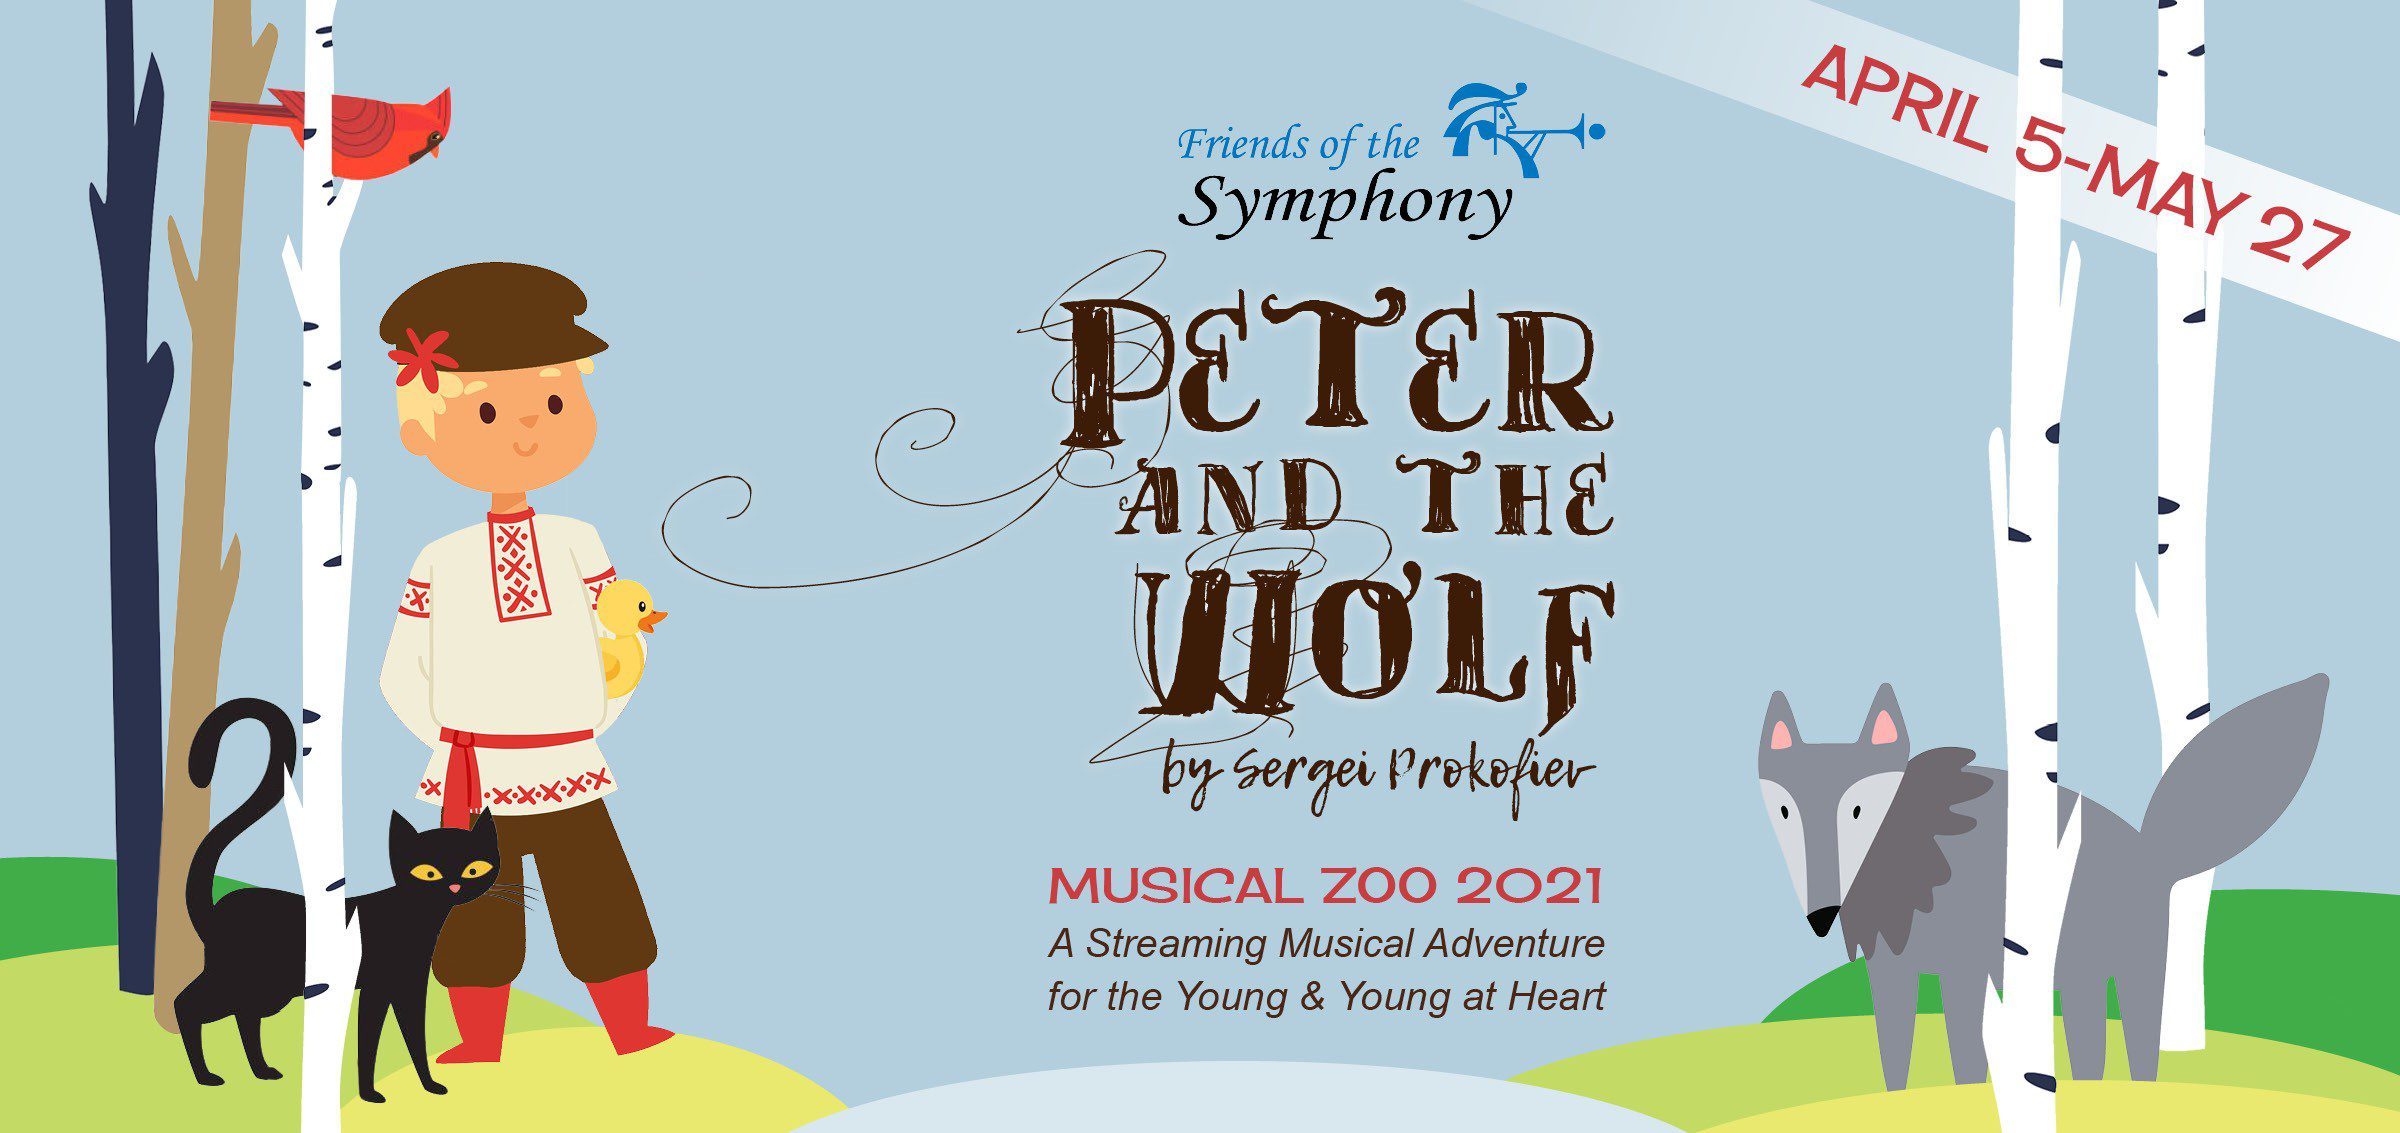 Musical Zoo 2021 Peter and the Wolf Virtual